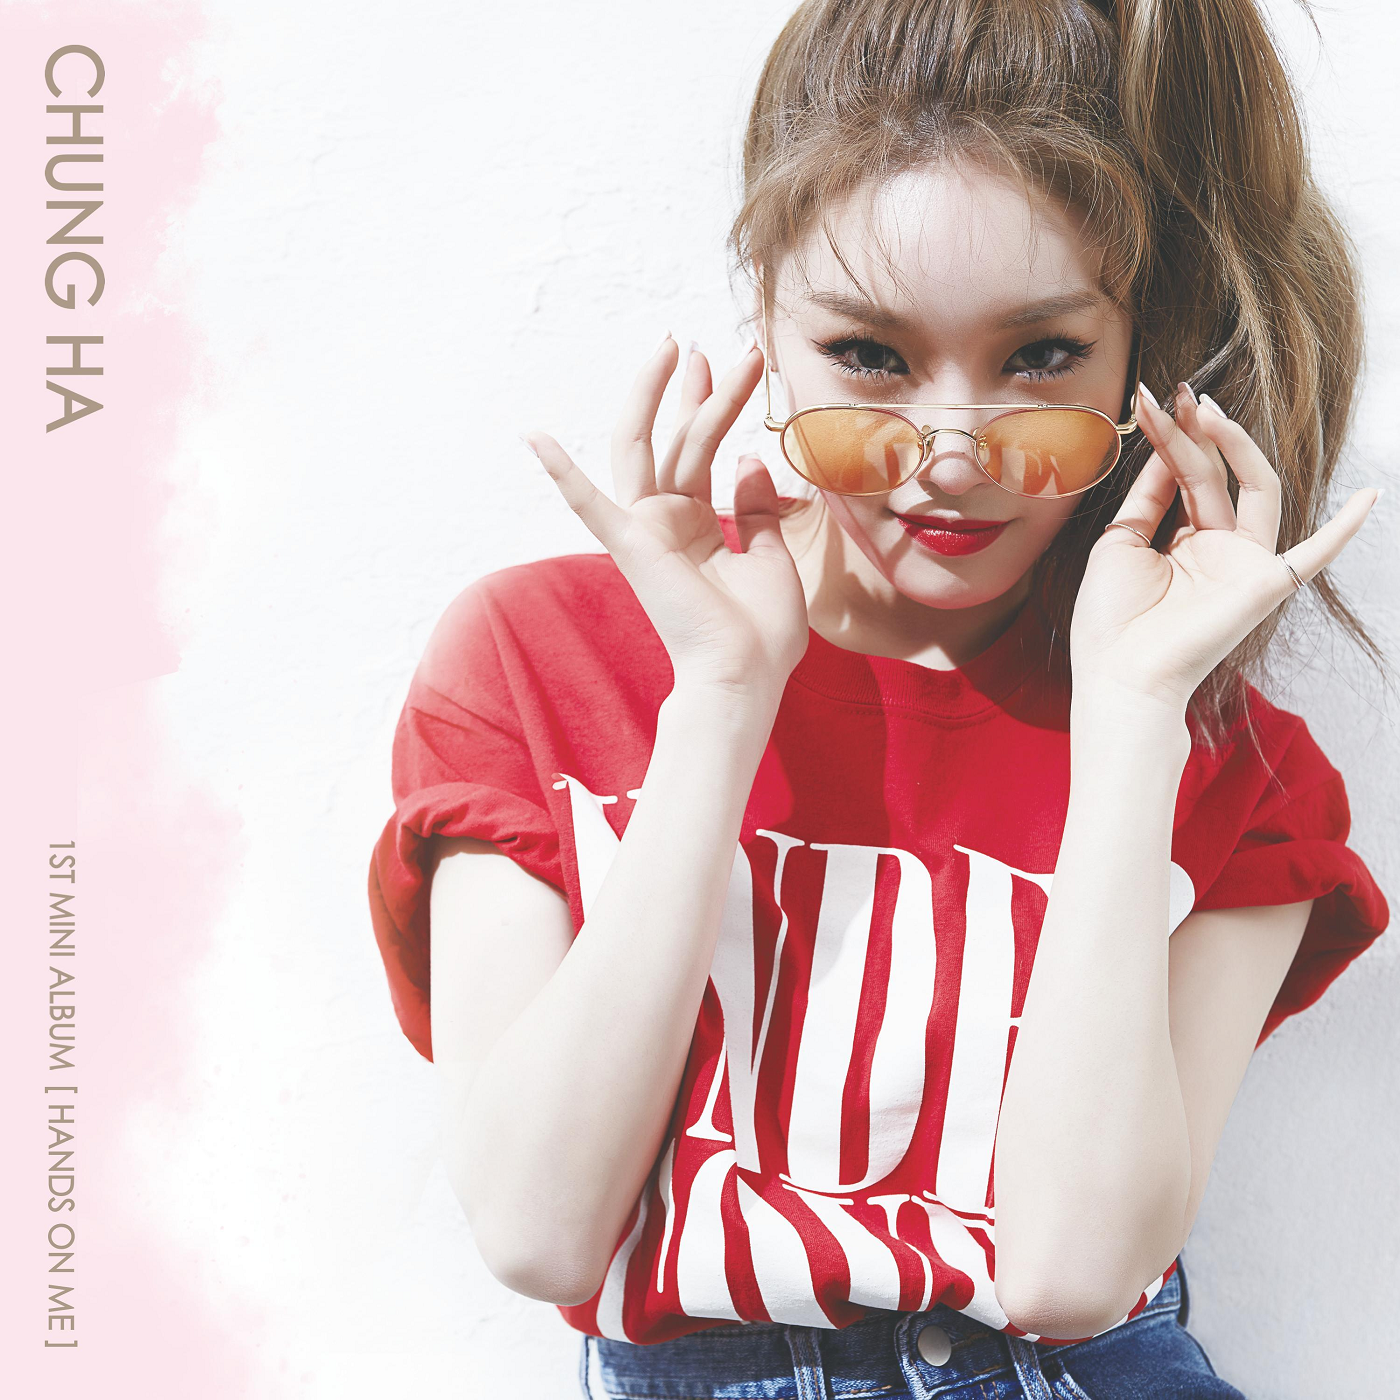 Hands On Me (Album Cover).png